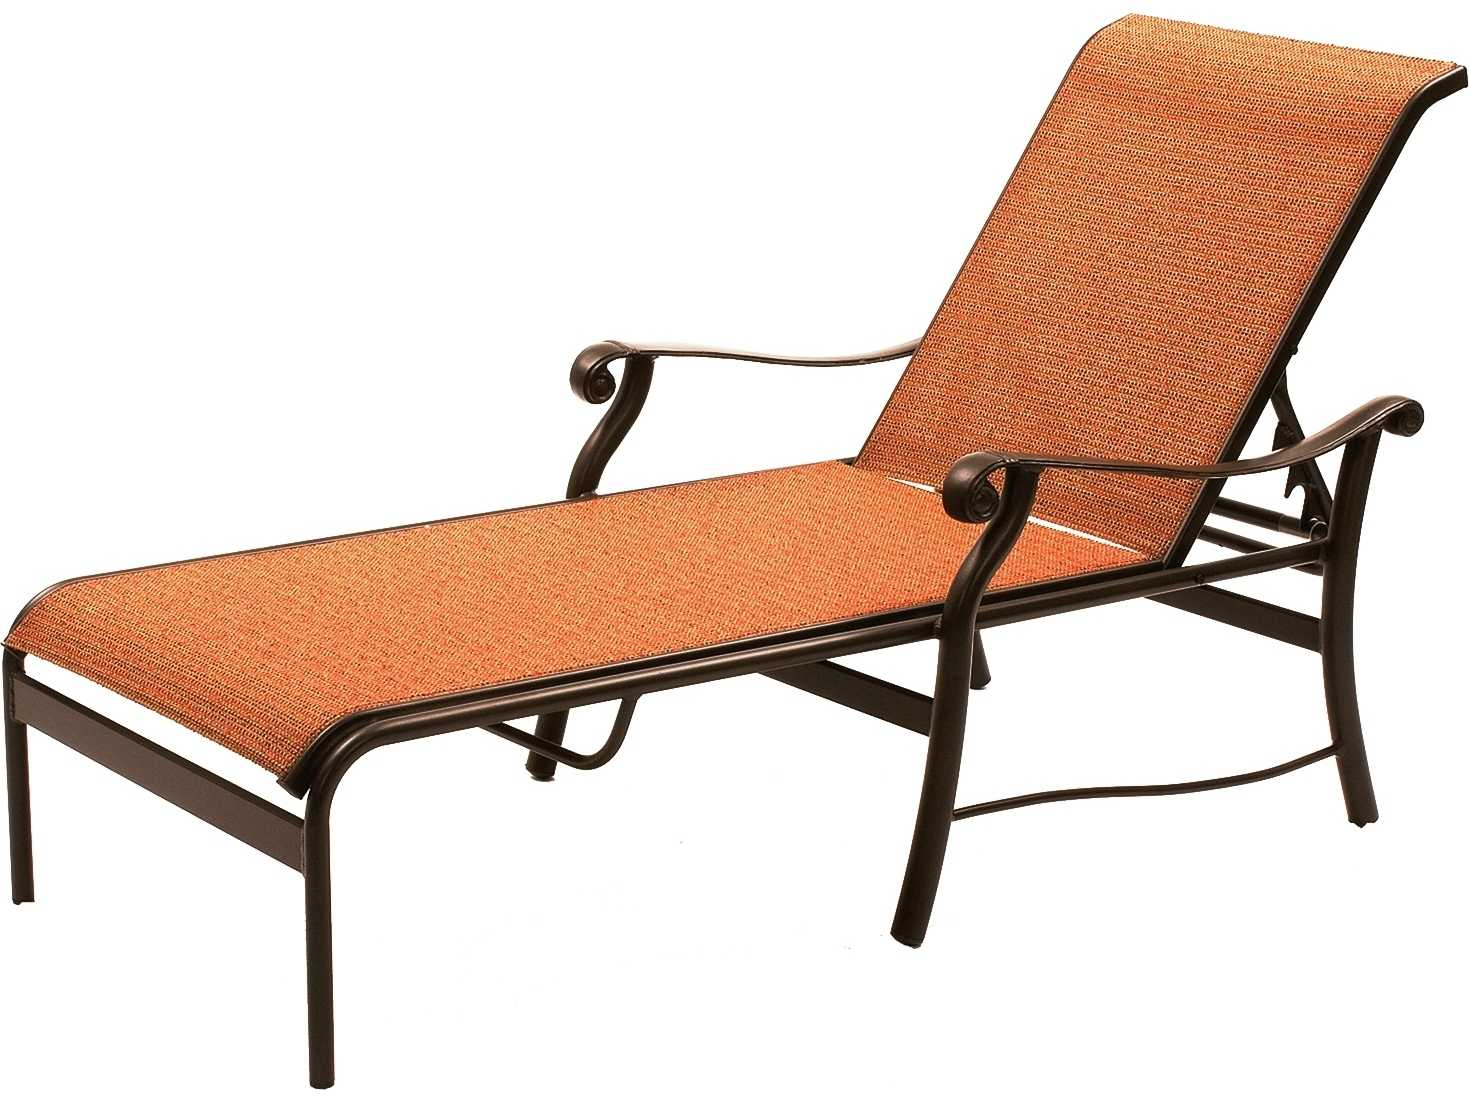 Suncoast rendezvous sling cast aluminum arm chaise 5813 for Chaise longue textilene alu